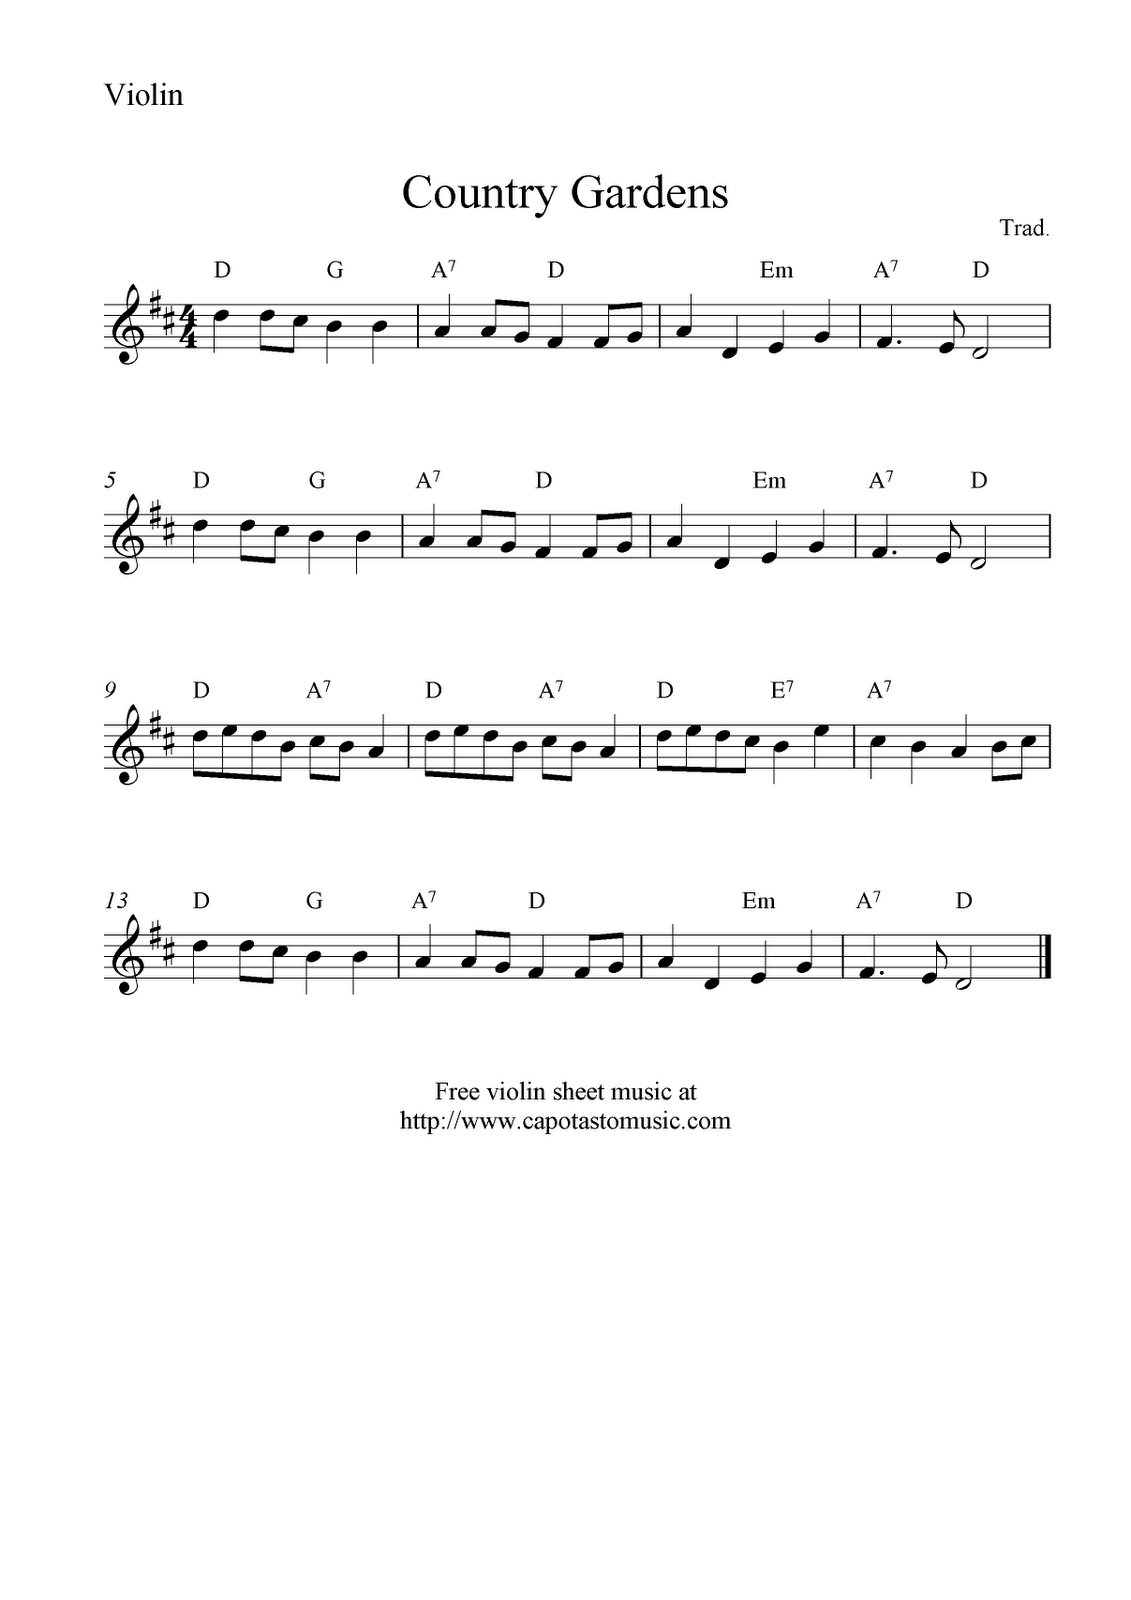 free country fiddle sheet music free sheet music scores free violin sheet music country. Black Bedroom Furniture Sets. Home Design Ideas